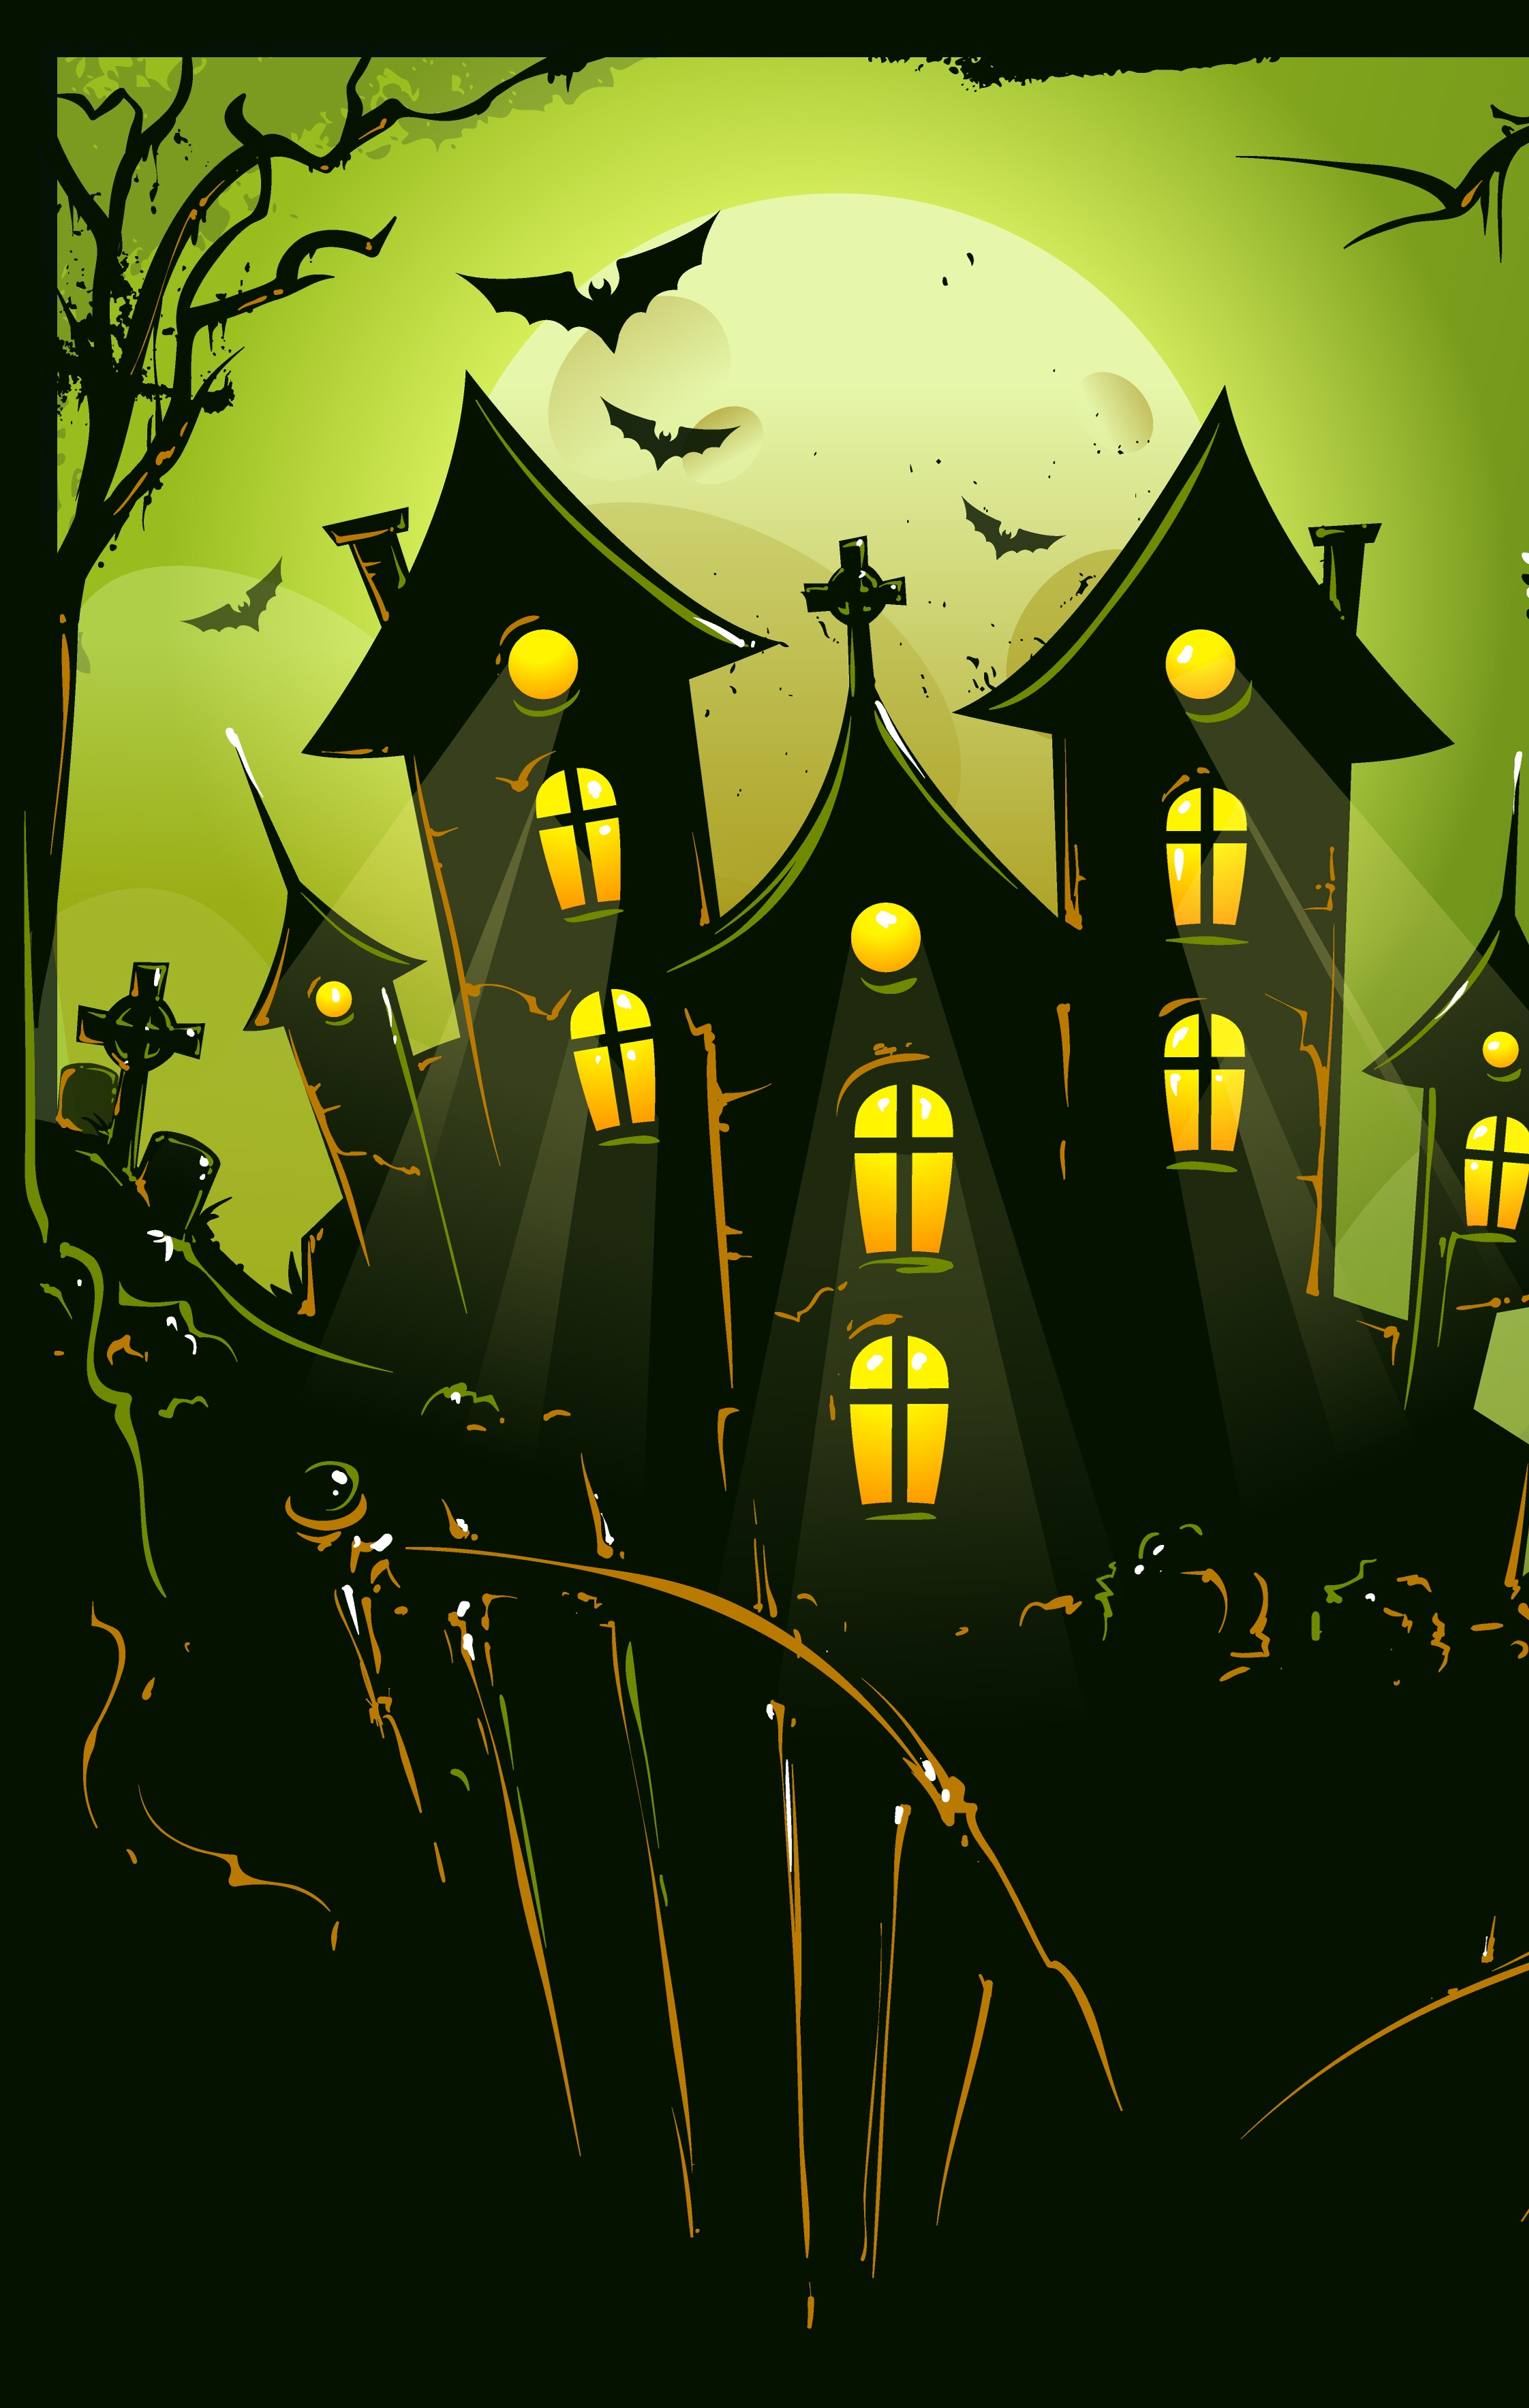 halloween vector illustration silhouette scary horror bat tree leaf graphic light